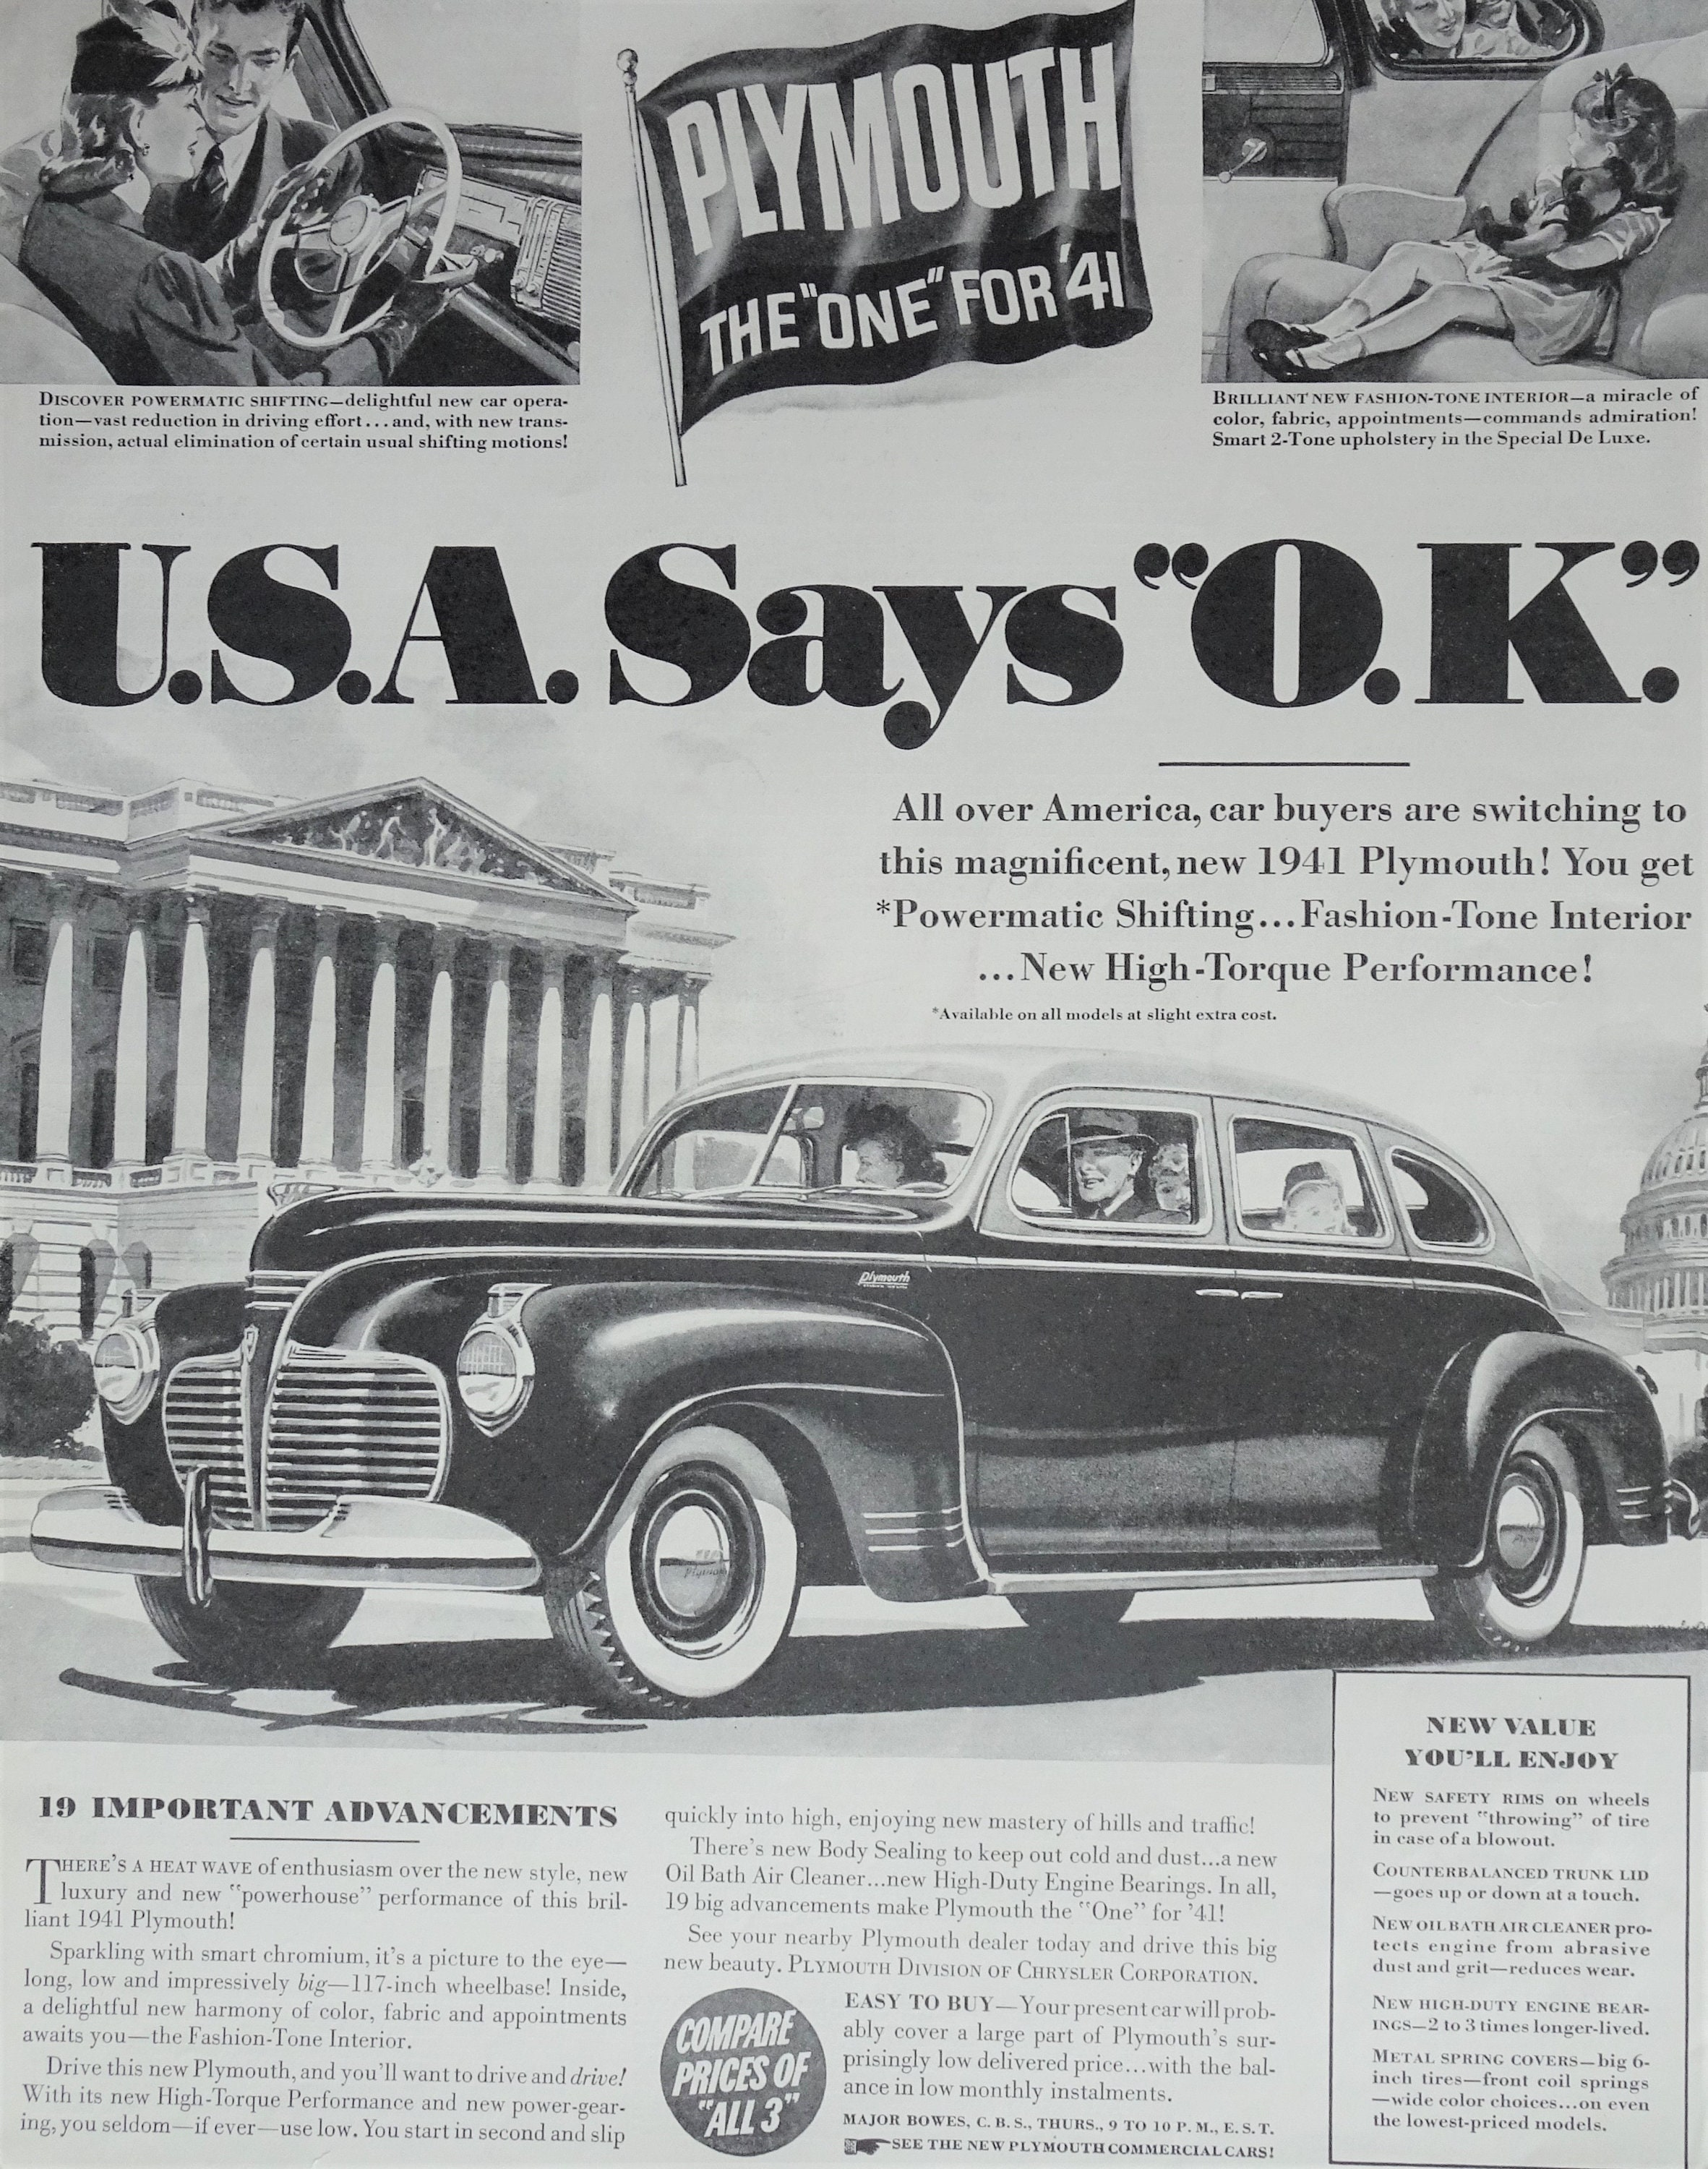 1941 Plymouth Car Vintage Magazine Ad Print Ads Wall Decor Etsy Station Wagon Image 0 1